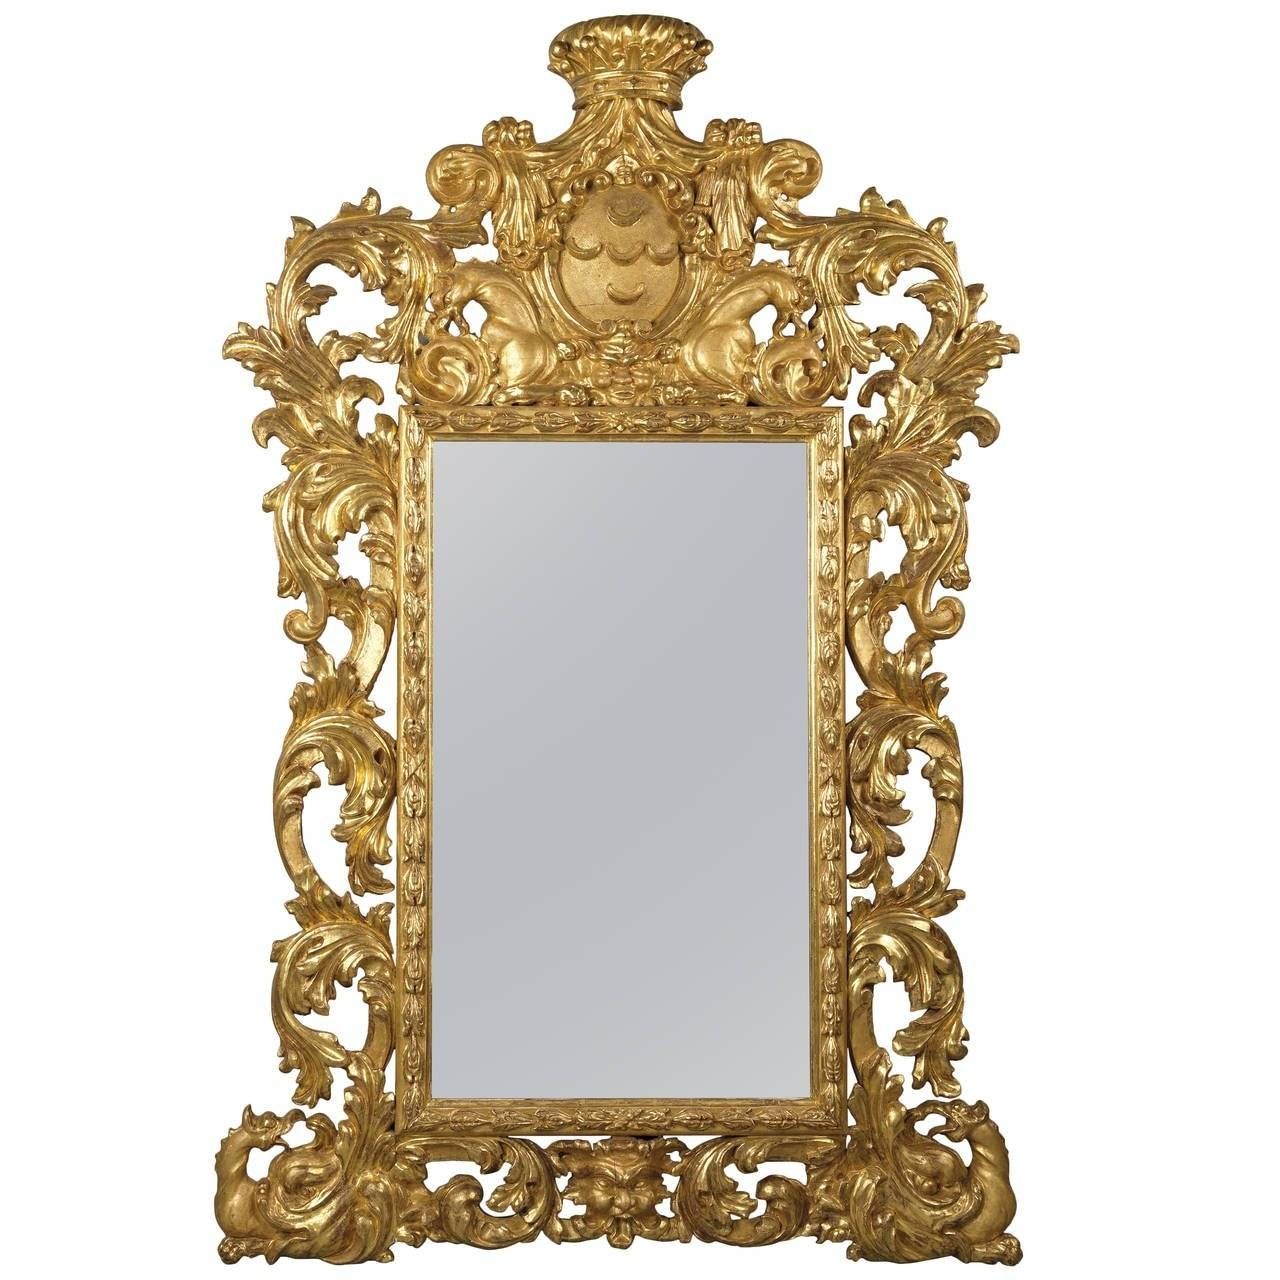 Baroque Style Carved Giltwood Mirror For Sale At 1Stdibs throughout Baroque Style Mirrors (Image 6 of 25)